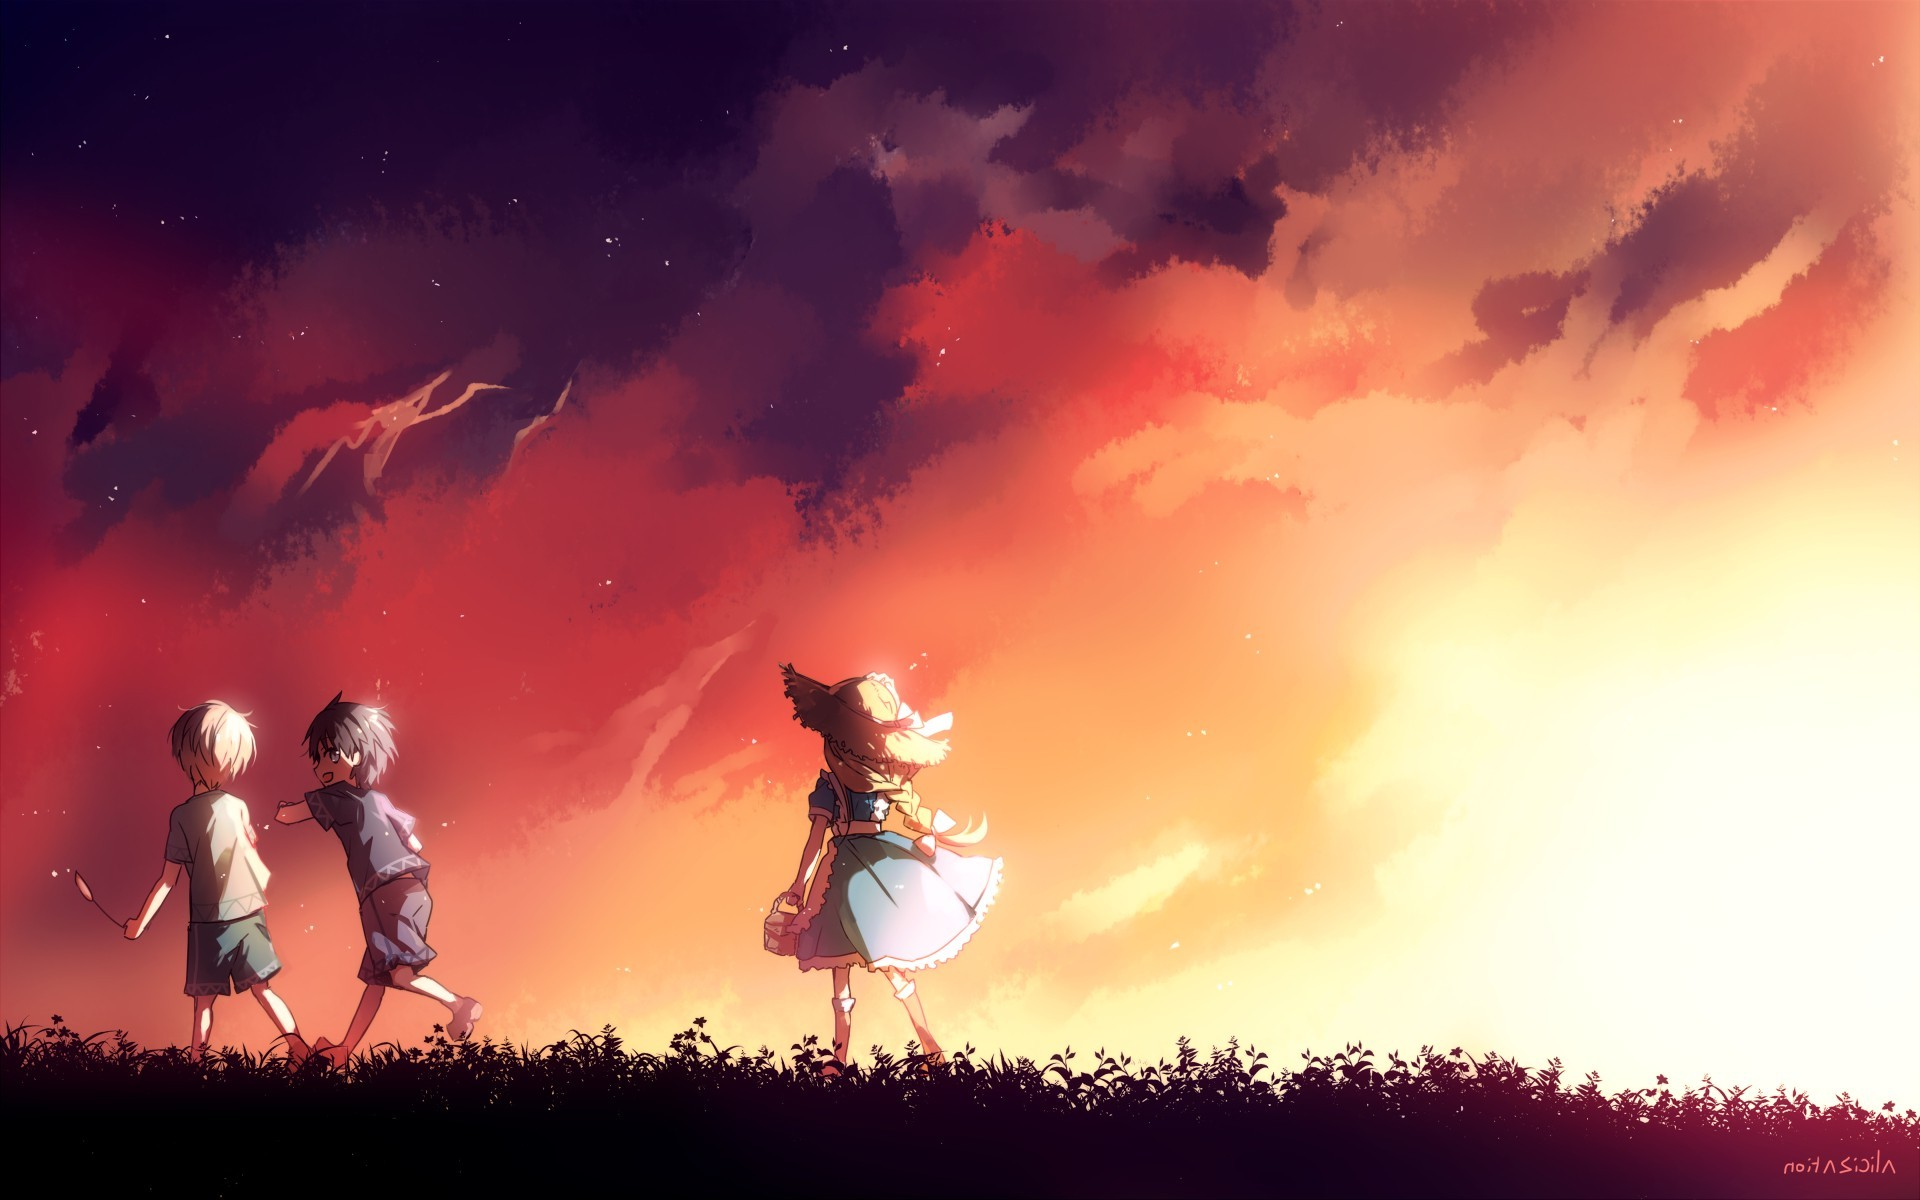 Sword Art Online Background: Sword Art Online Background ·① Download Free Beautiful